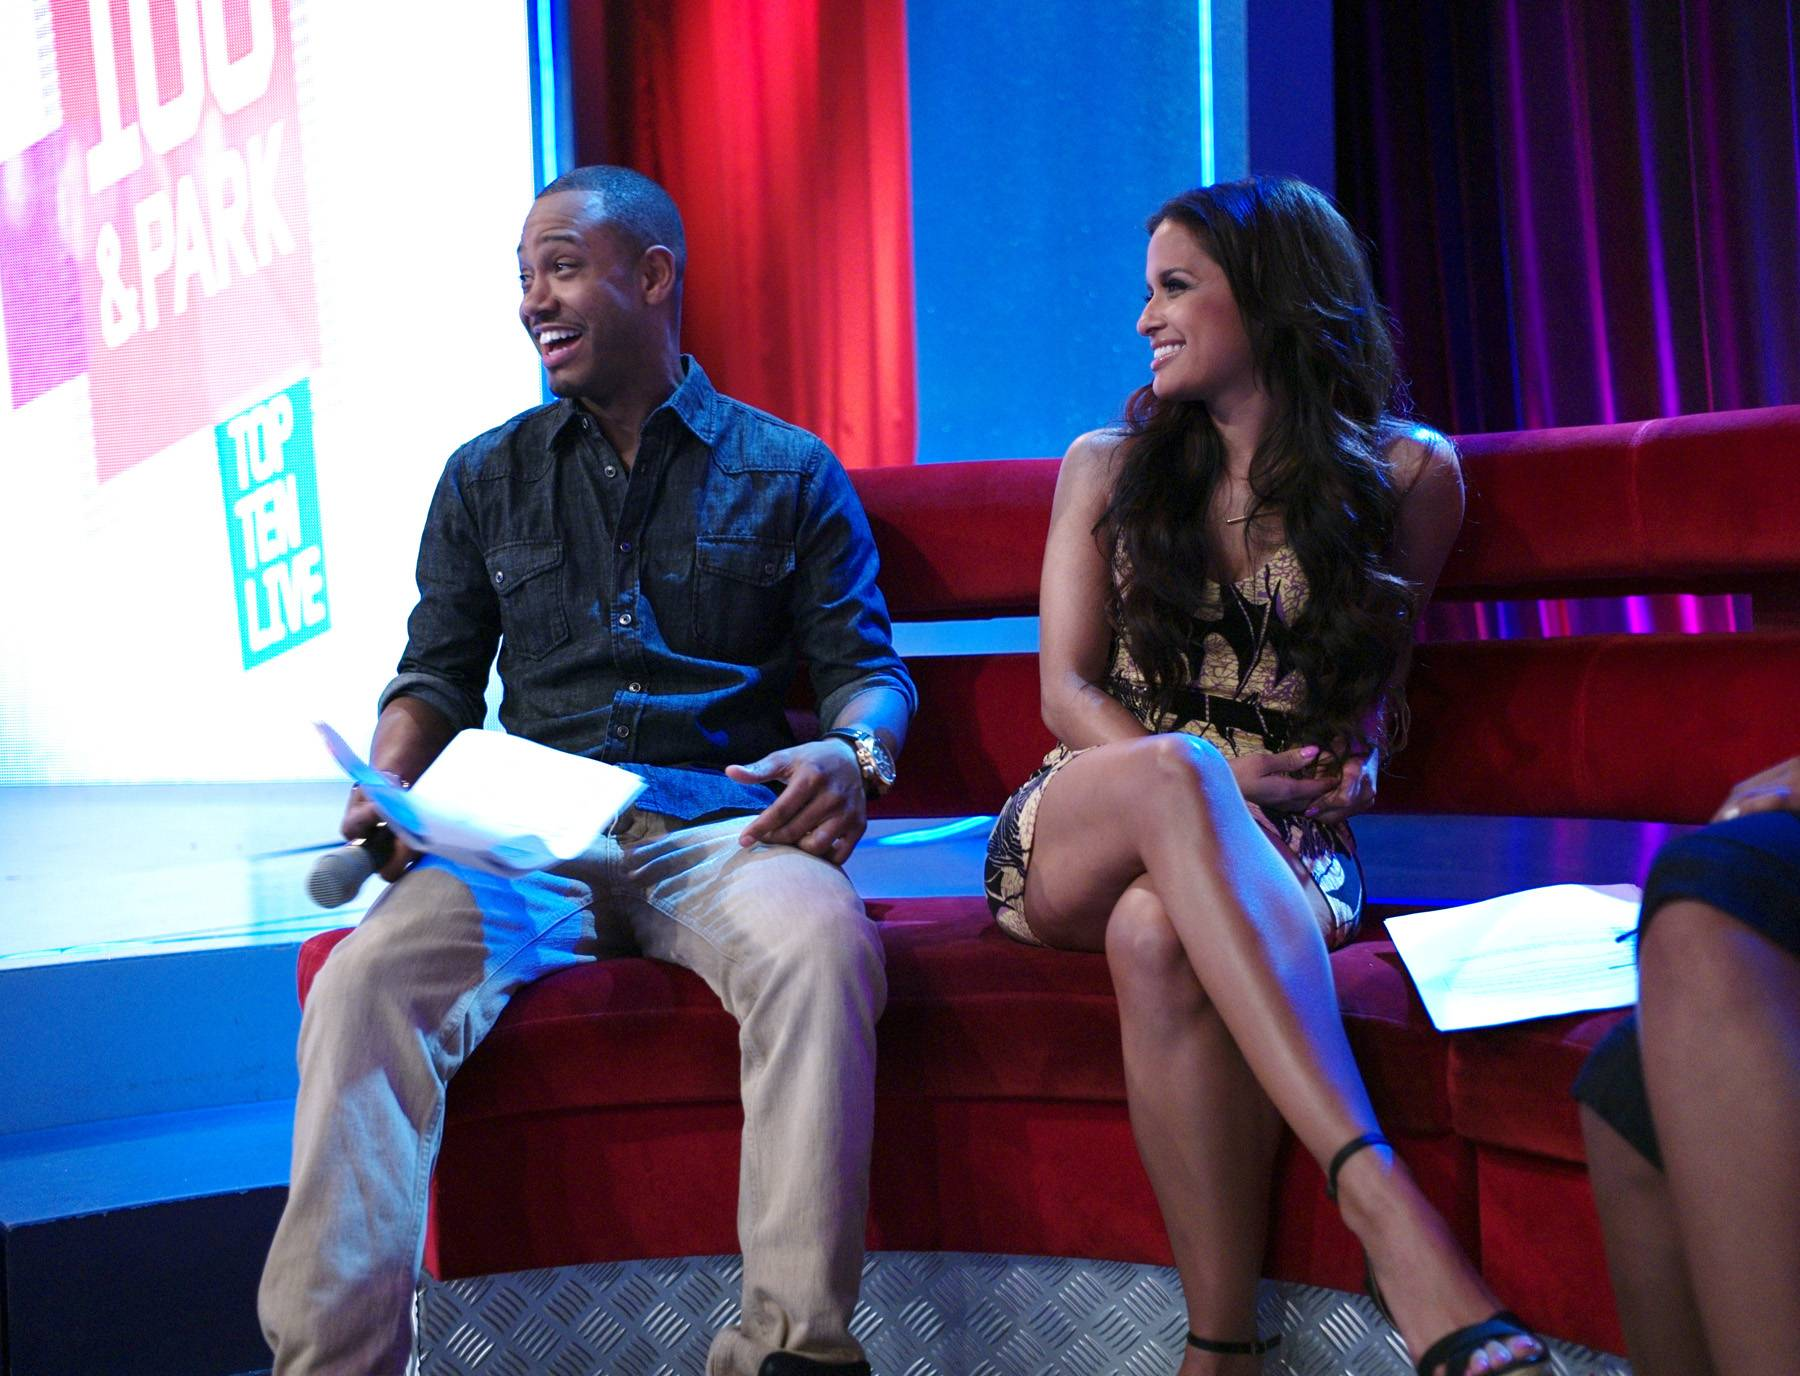 LOL - Terrence J and Rocsi Diaz before making their special announcement at 106 & Park, May 29, 2012. (Photo: John Ricard / BET)